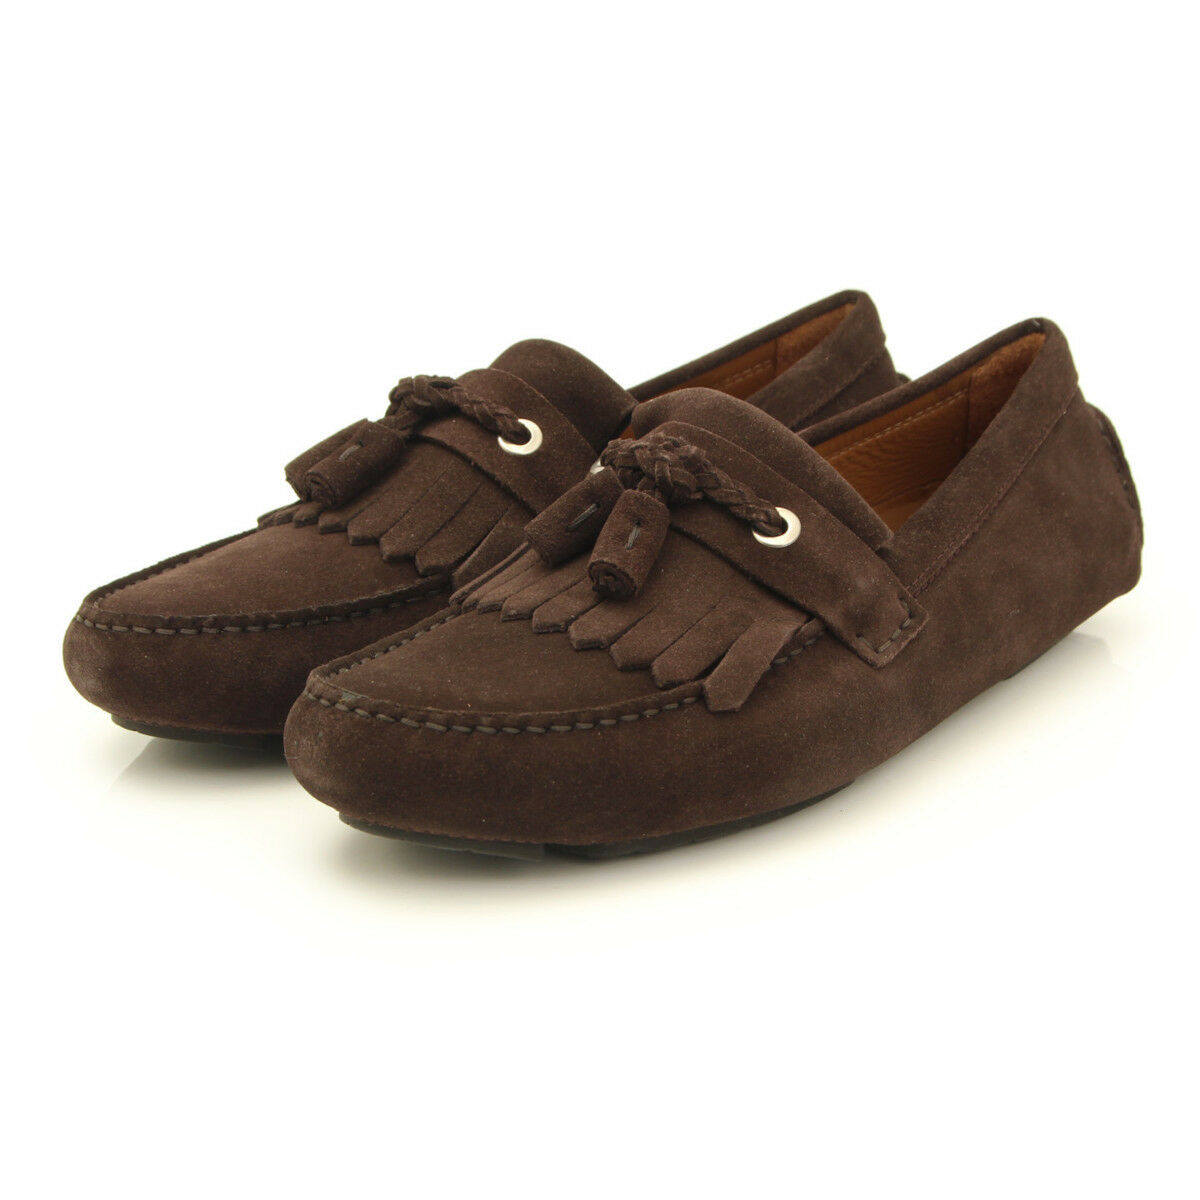 AUTHENTIC JIMMY CHOO Uomo TASSELED SUEDE DRIVING SHOES BROWN GRADE NS  ED -HP